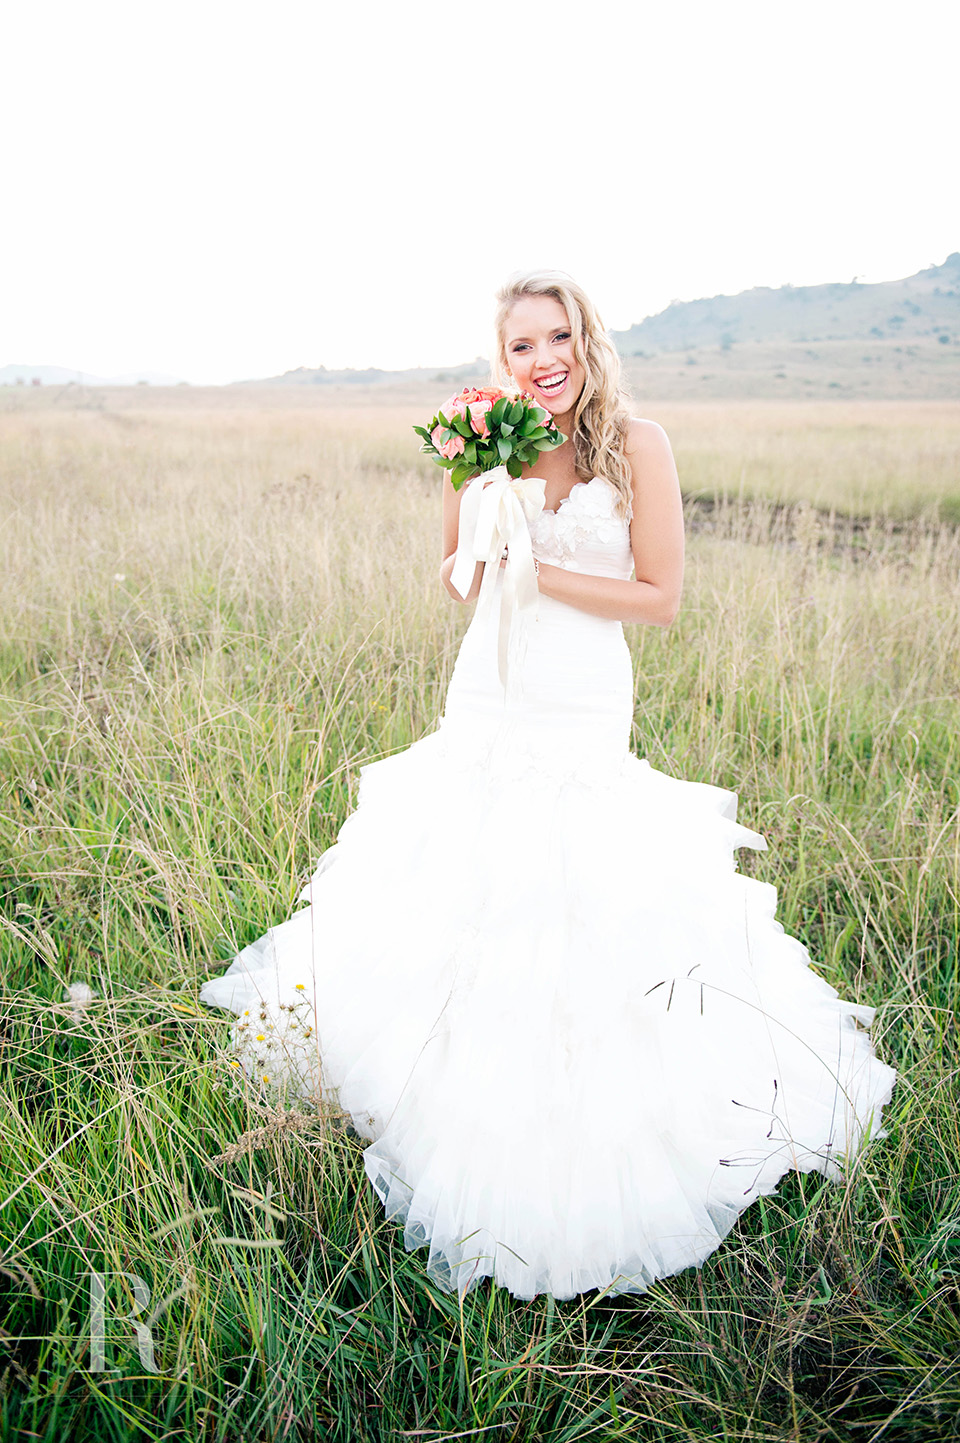 RYAN PARKER PHOTOGRAPHY_GABI & ROBBY_WEDDING_STONE CELLAR_GAUTENG-5614.jpg